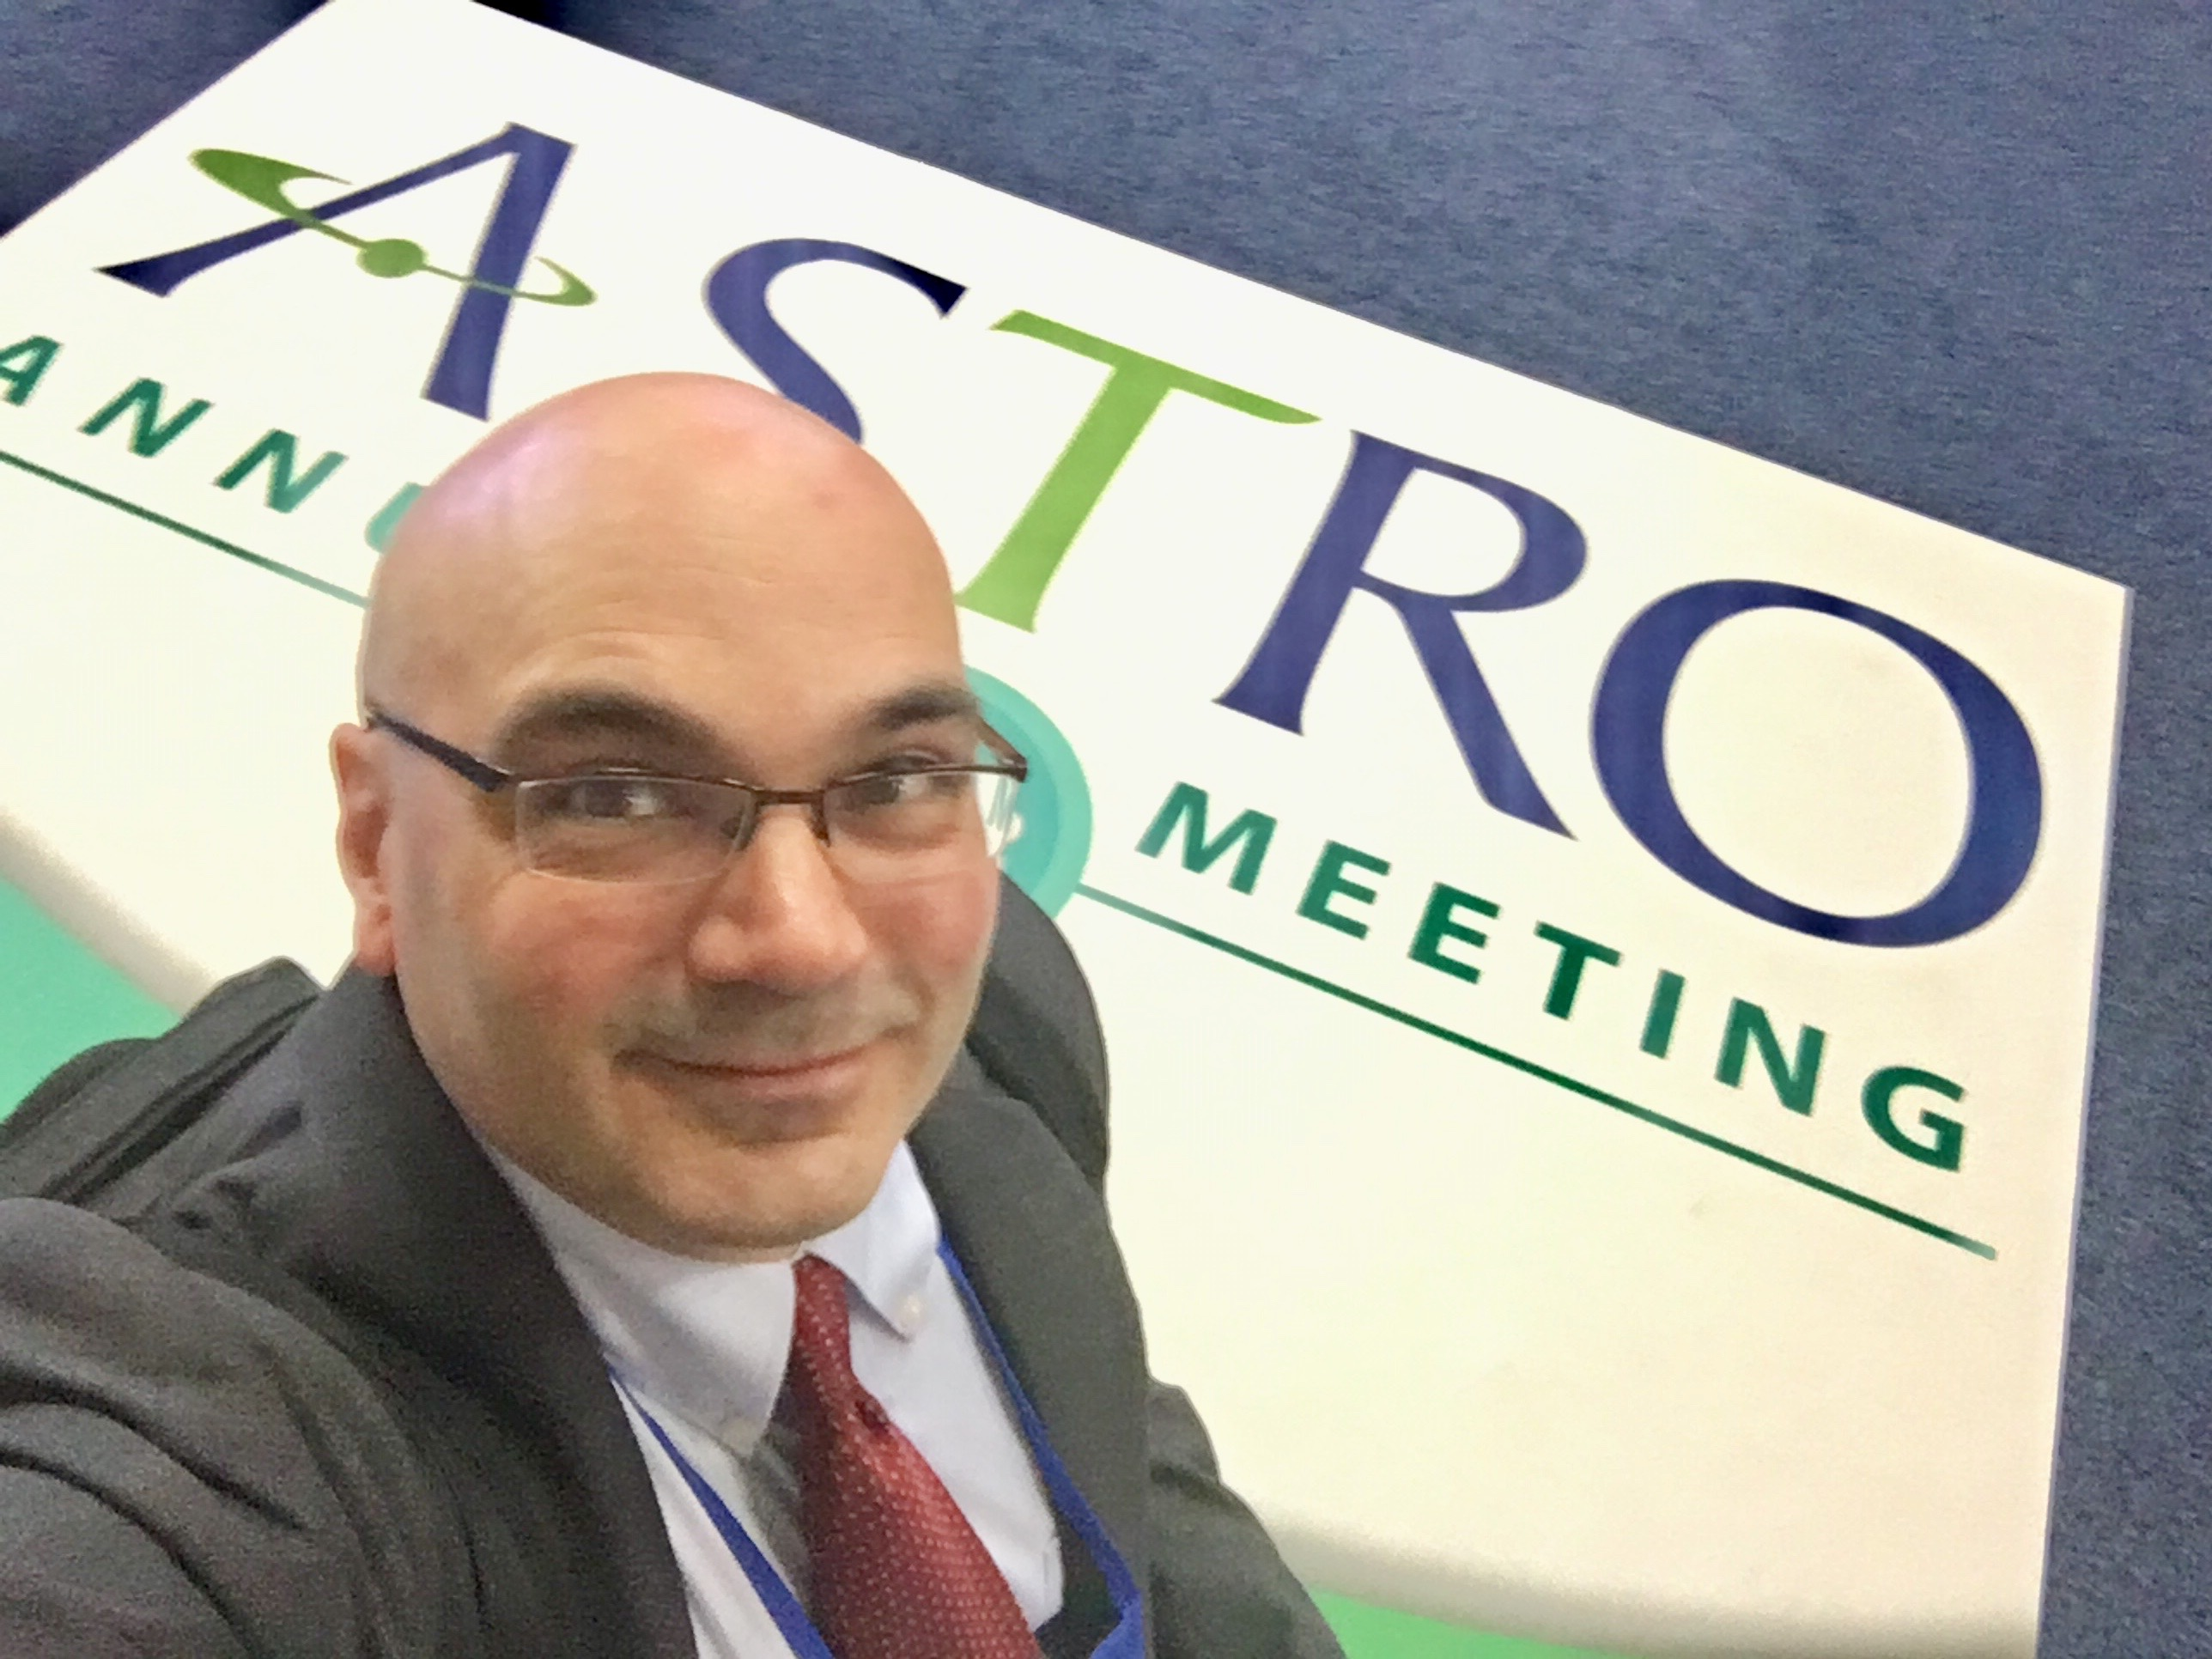 ITN Editor Dave Fornell at the ASTRO 2018 radiation oncology meeting.